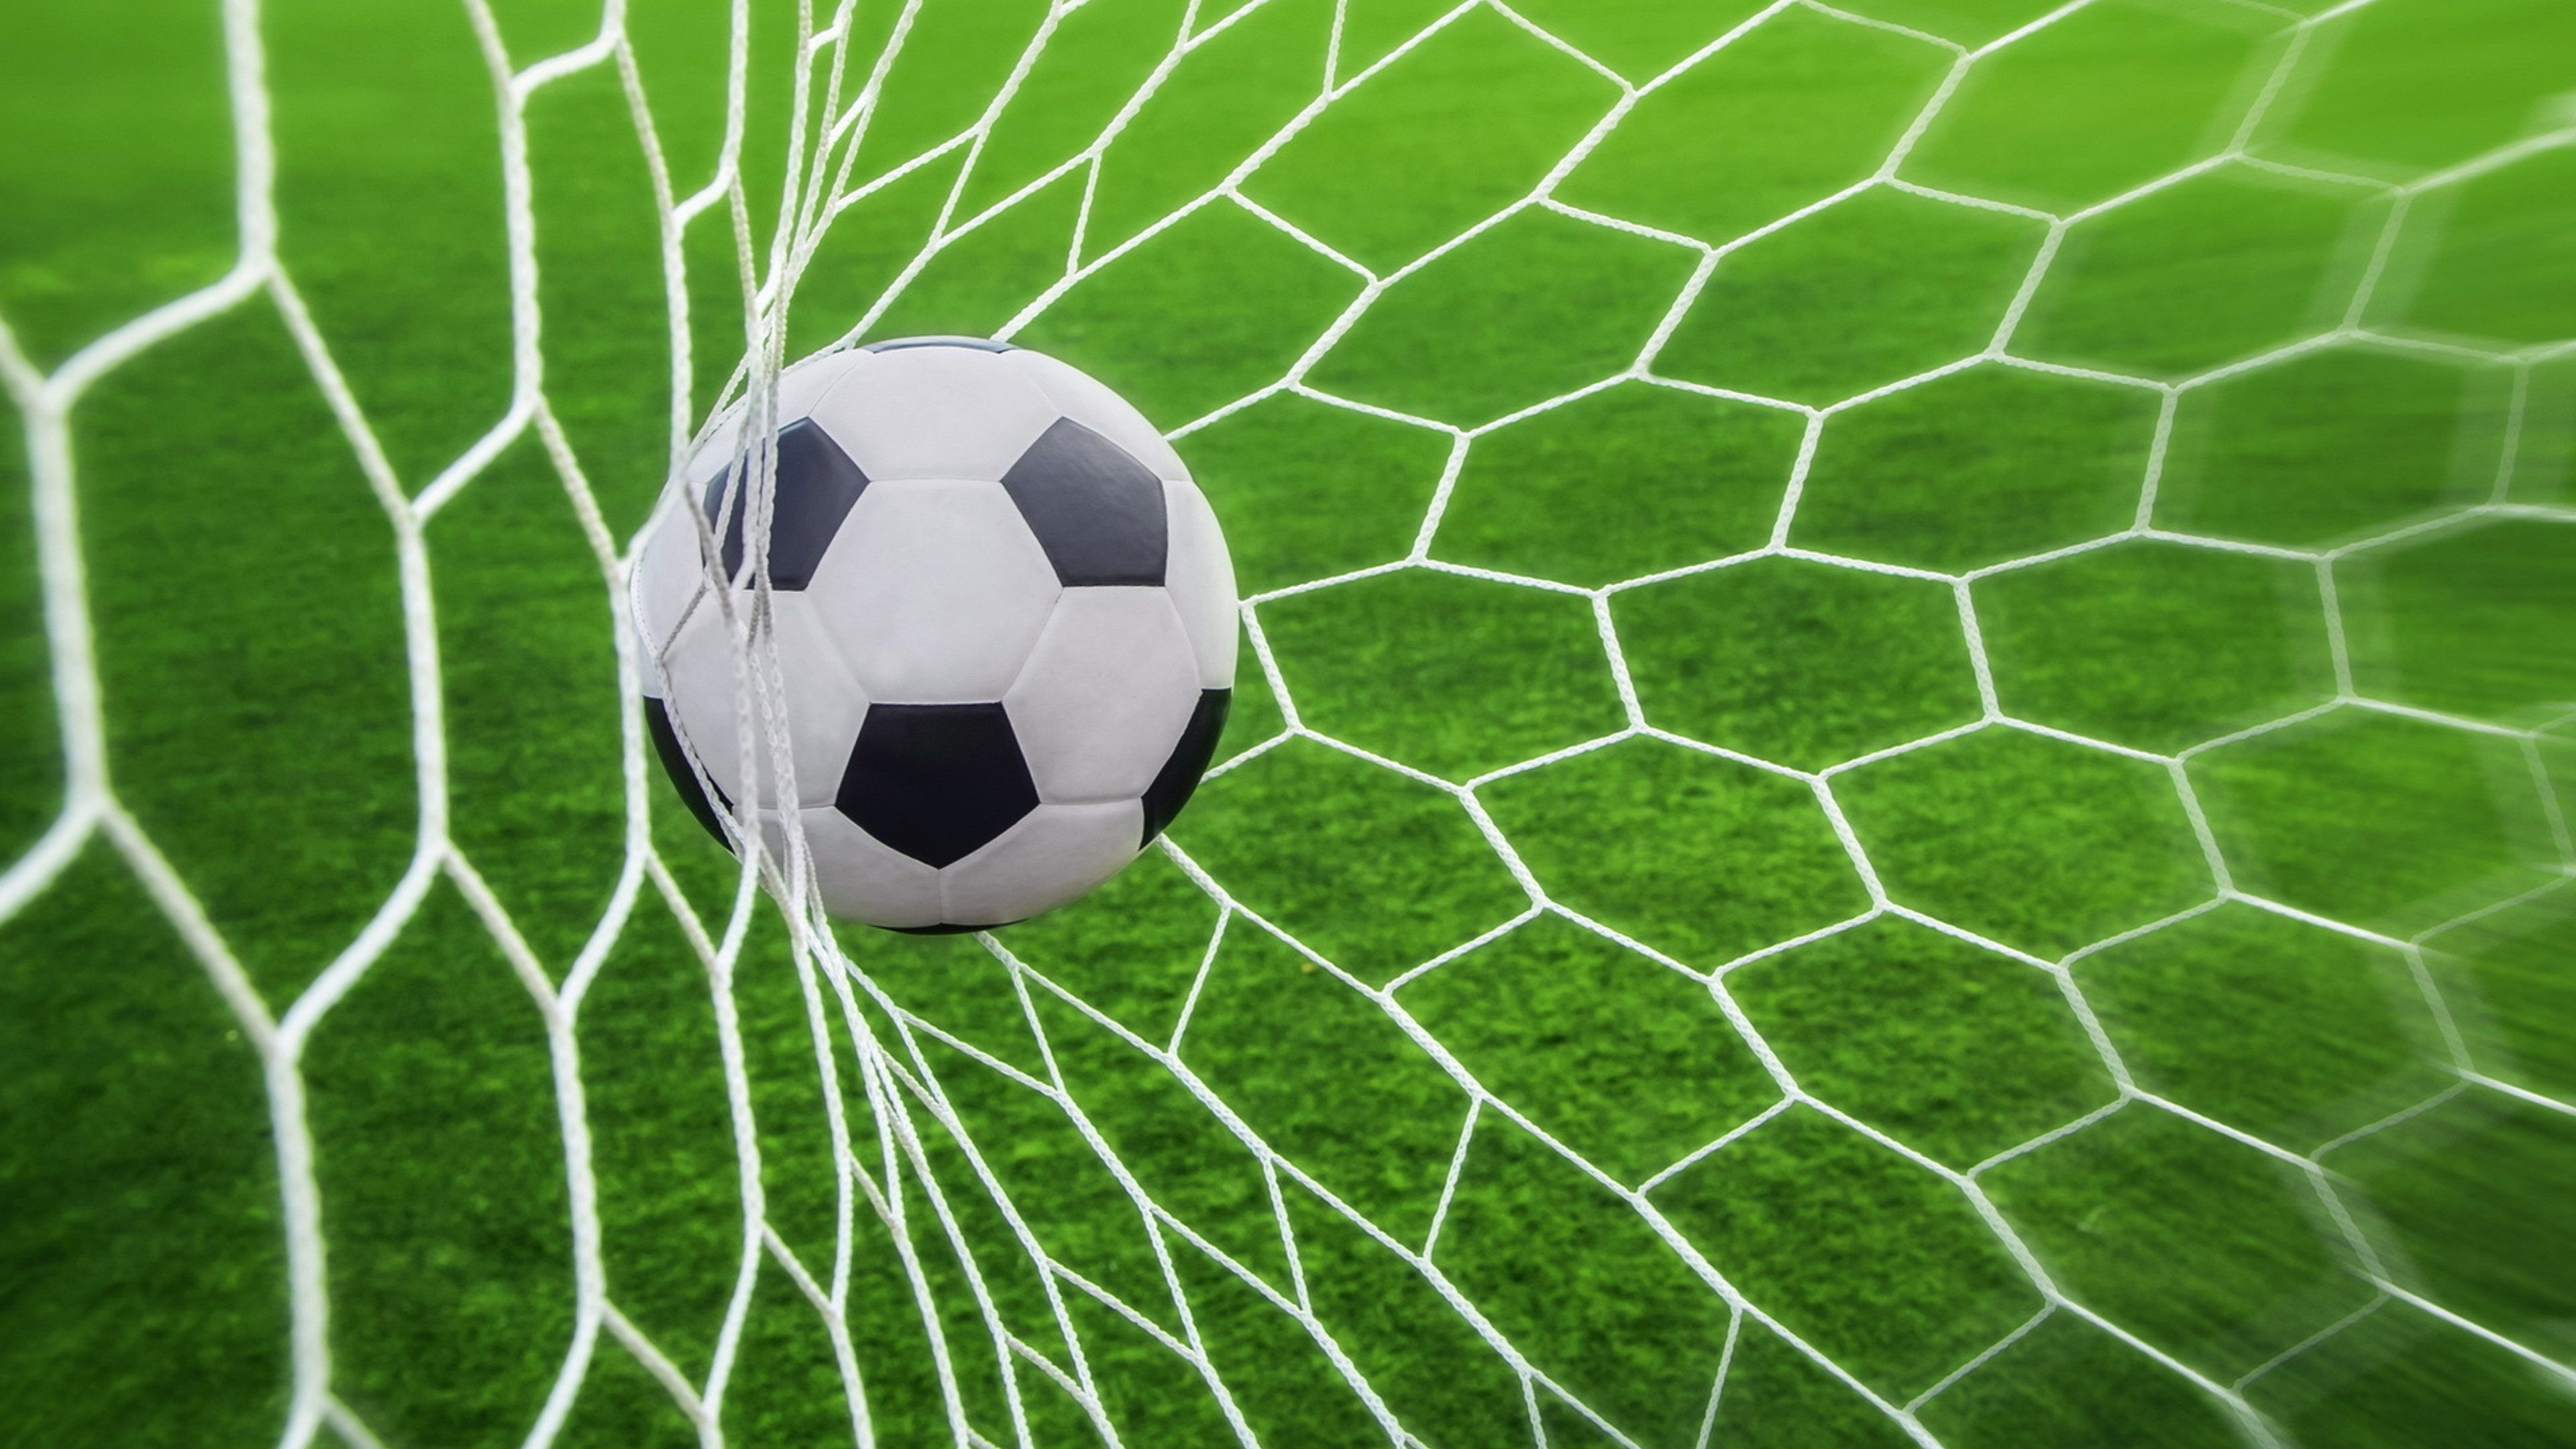 Soccer Goal Wallpaper Free Tob 3840 X 2160 Px 2 43 Mb Clip Art Goal Stadium With Ball Soccer Goal Soccer Soccer Ball